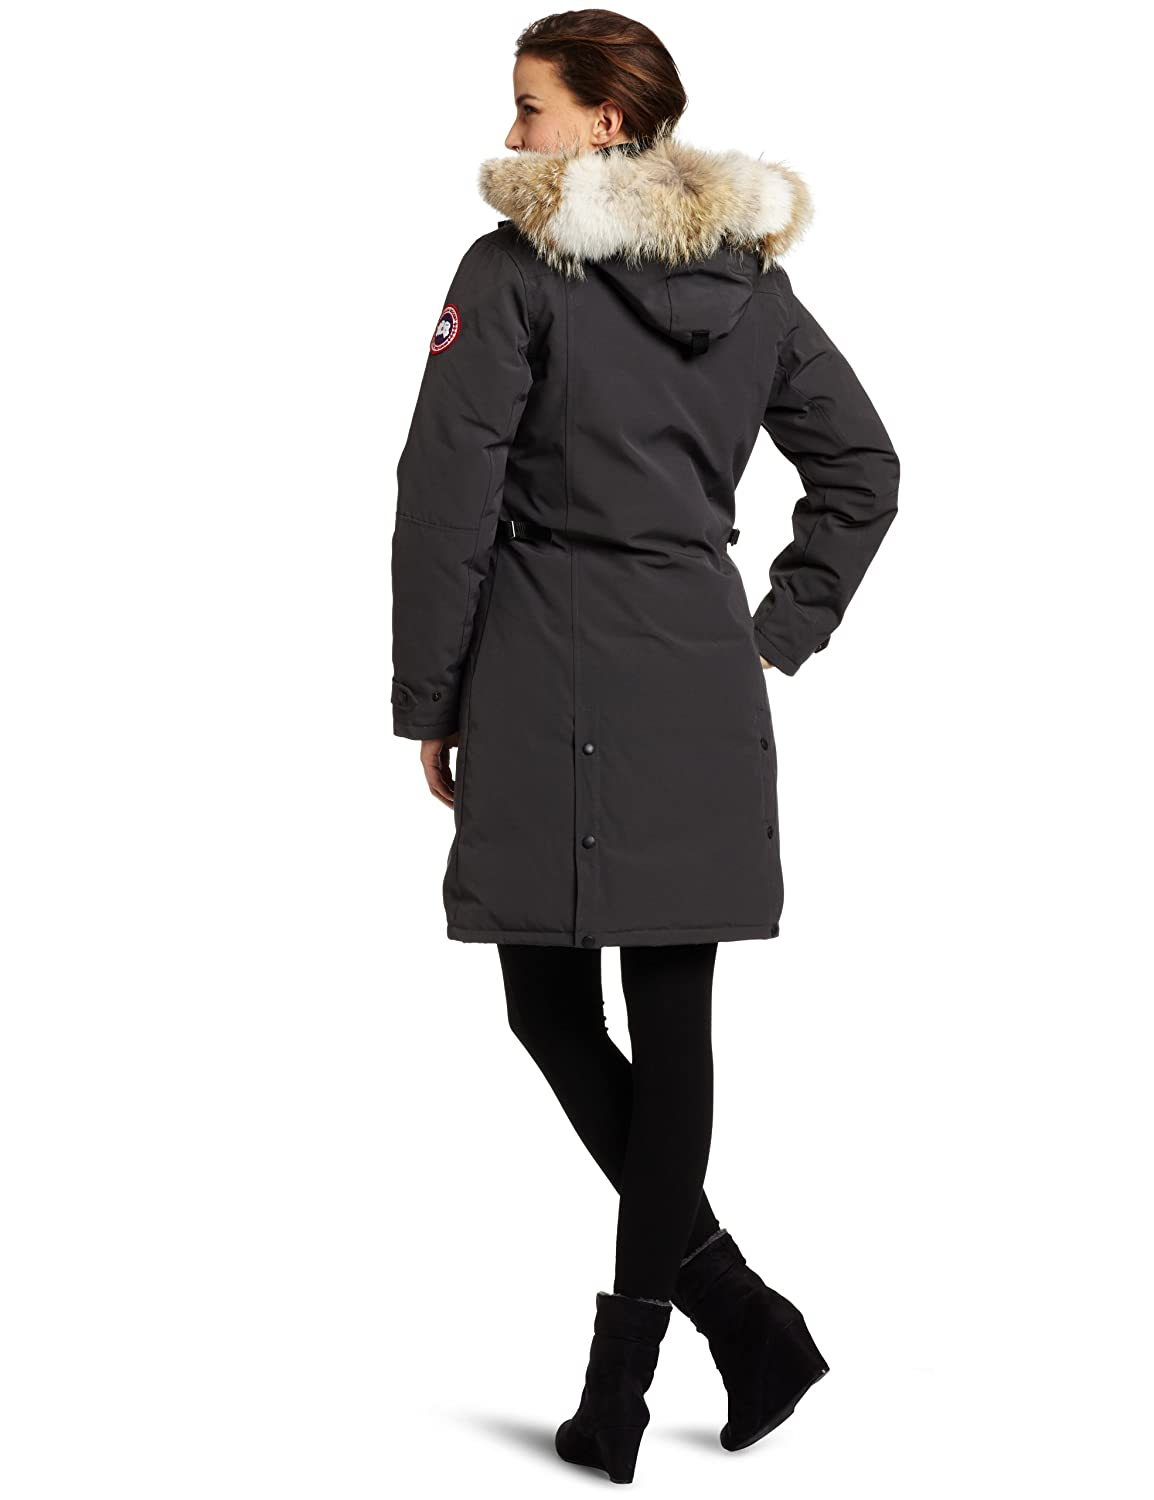 Details about Canada Goose Kensington Parka 100% Authentic Women Size Small Black Shipping Inc